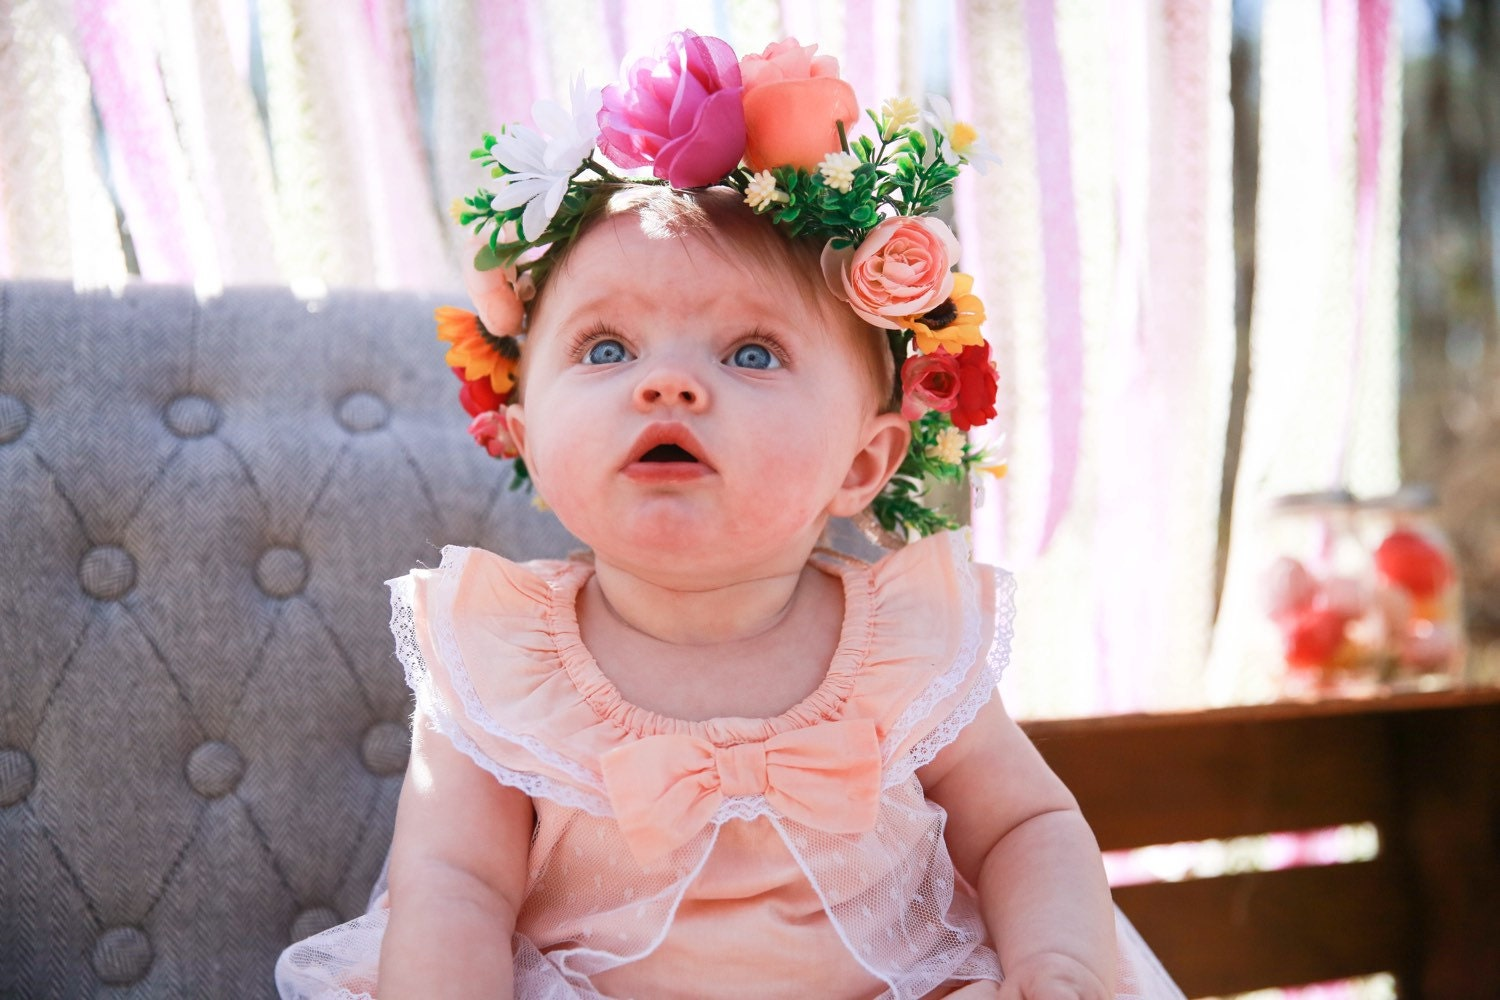 Kids Flower Crown Little Girls Crown Colorful Baby Crown